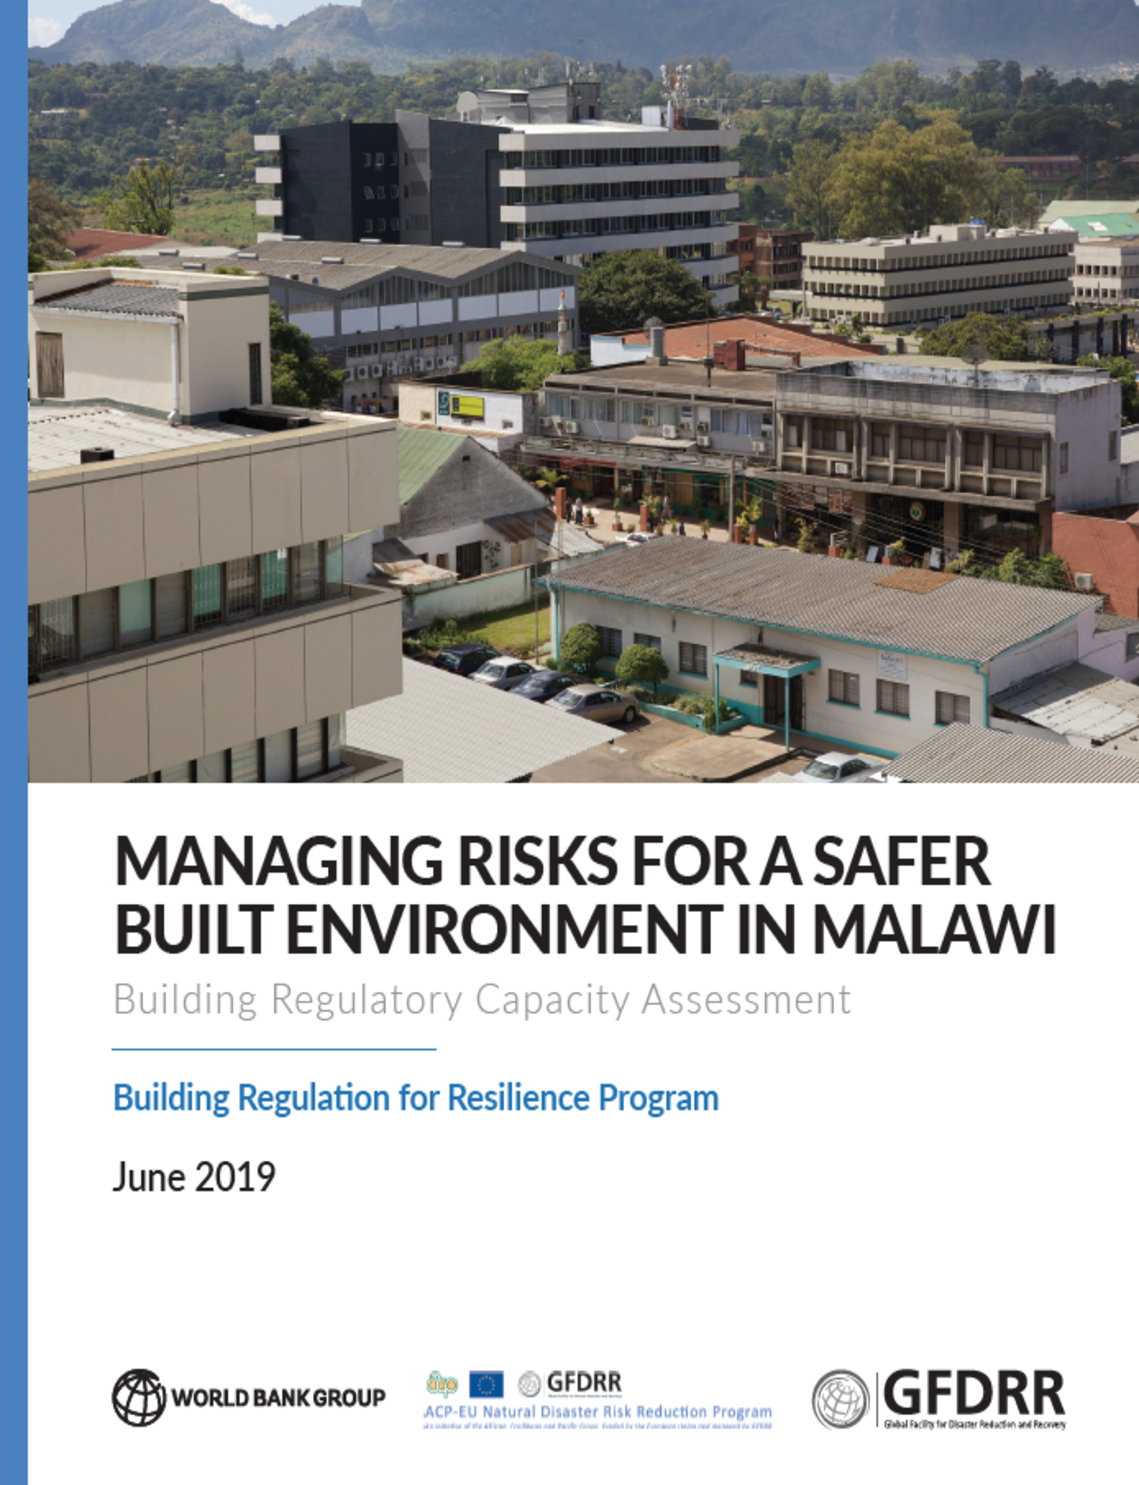 Managing Risks for Safer Built Environment in Malawi